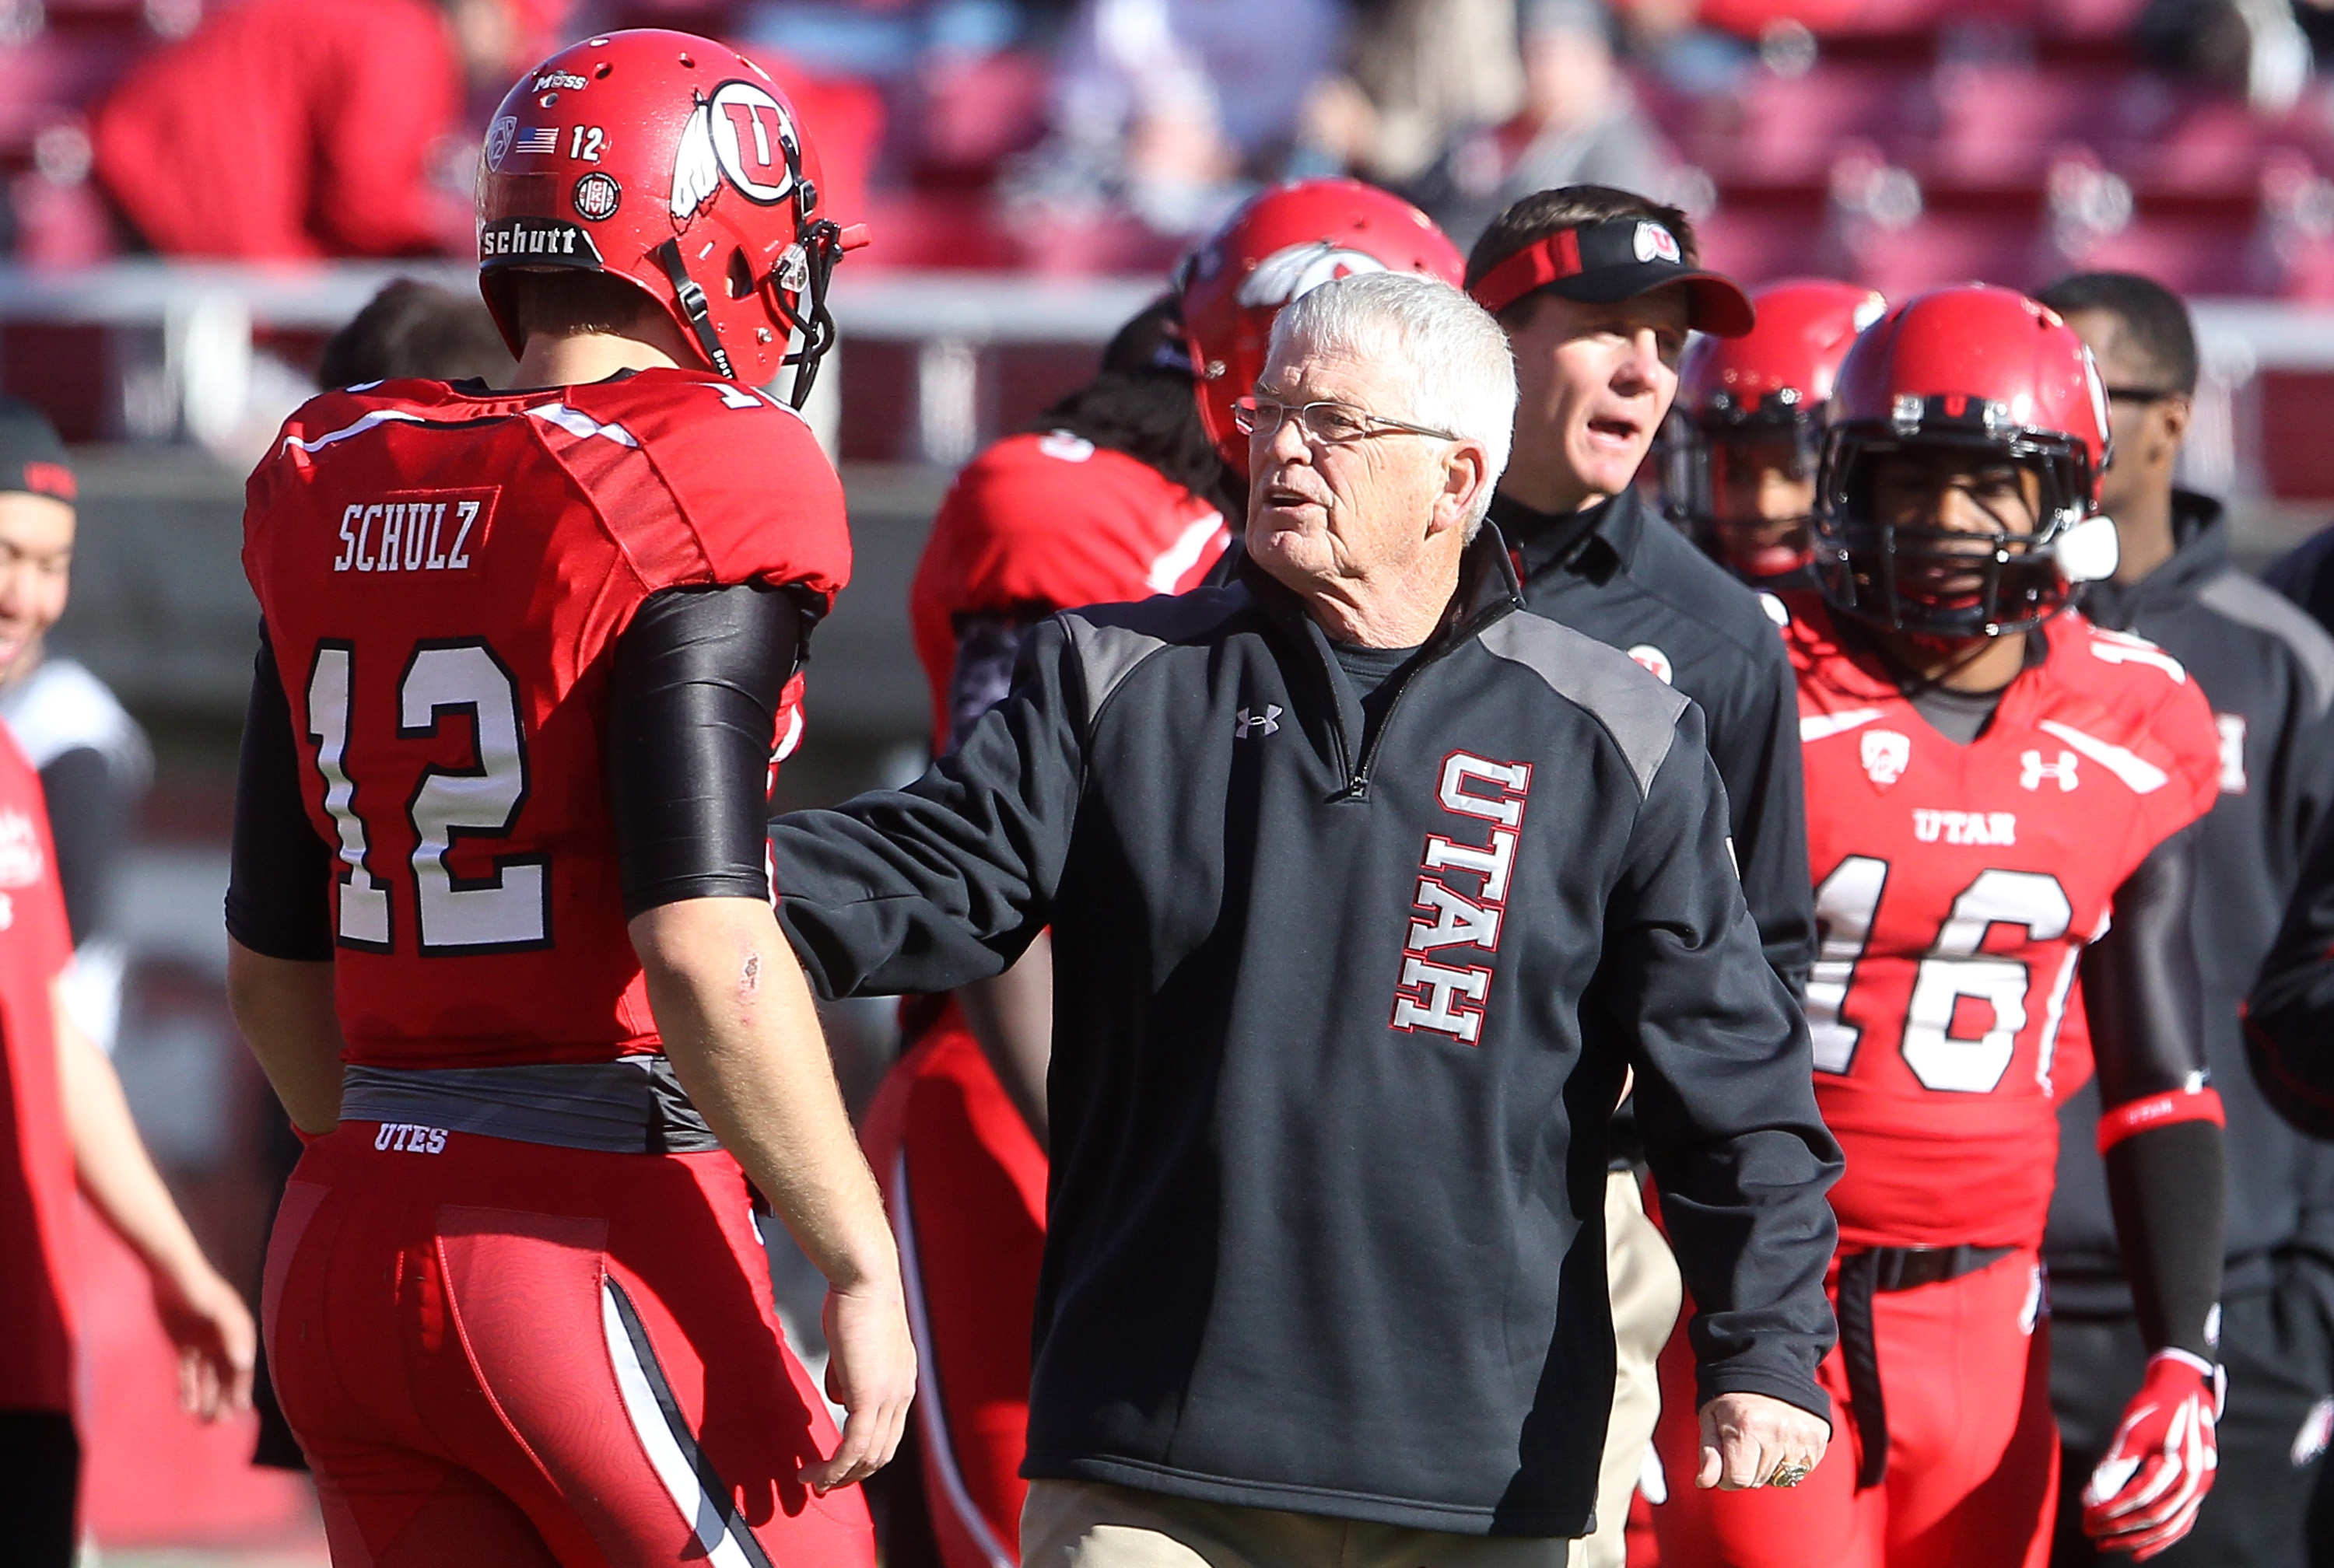 FILE - This Nov. 30, 2013, file photo shows Utah's Dennis Erickson during practice before the start of their NCAA college football game against Colorado, in Salt Lake City. Winning a national championship puts a coach in an exclusive group. Winning multip